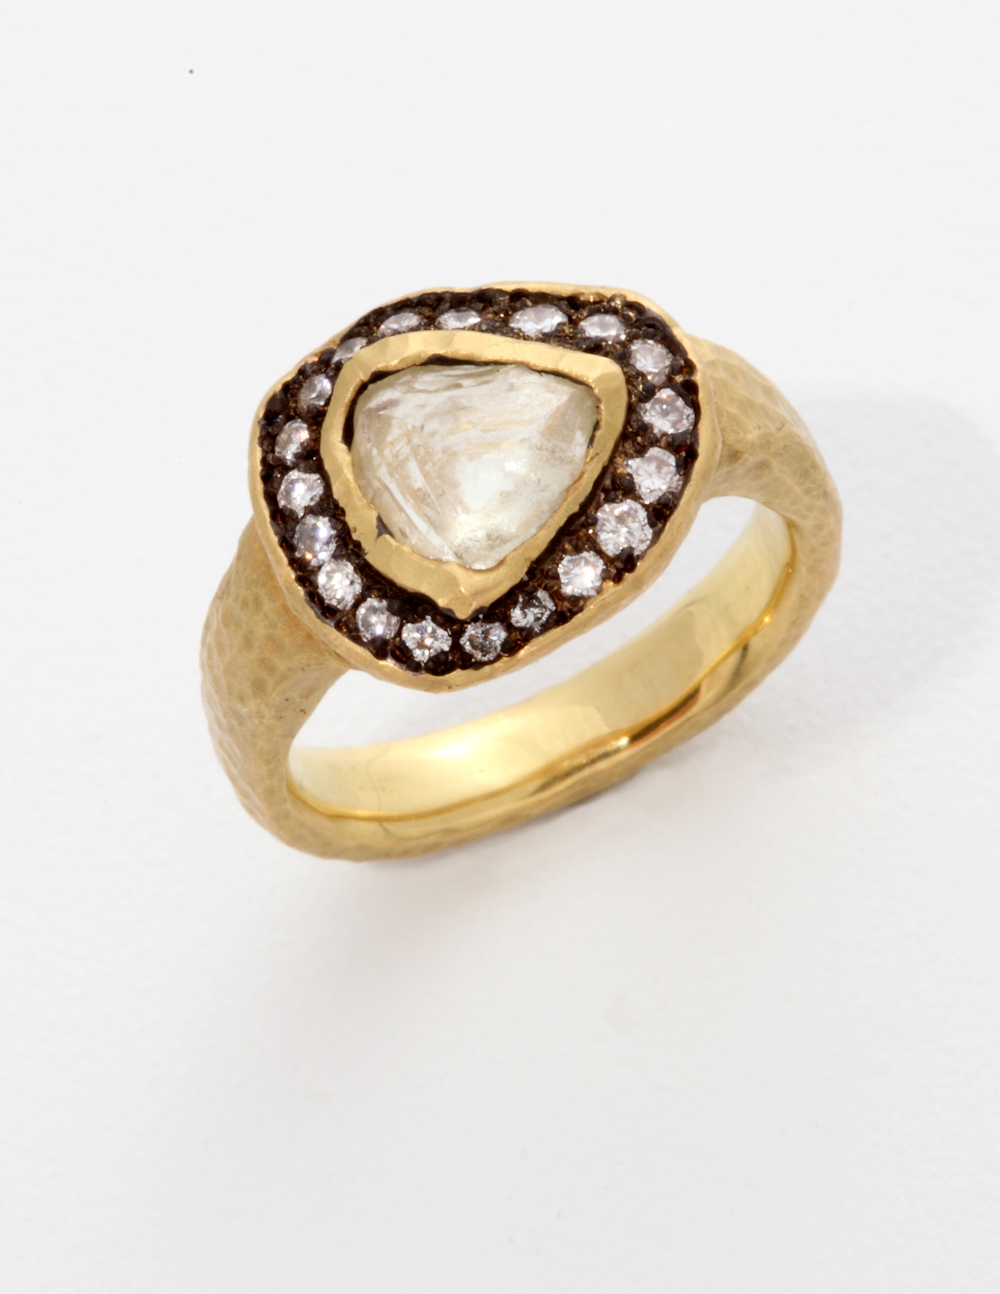 18k yellow gold, uncut center and small round diamonds